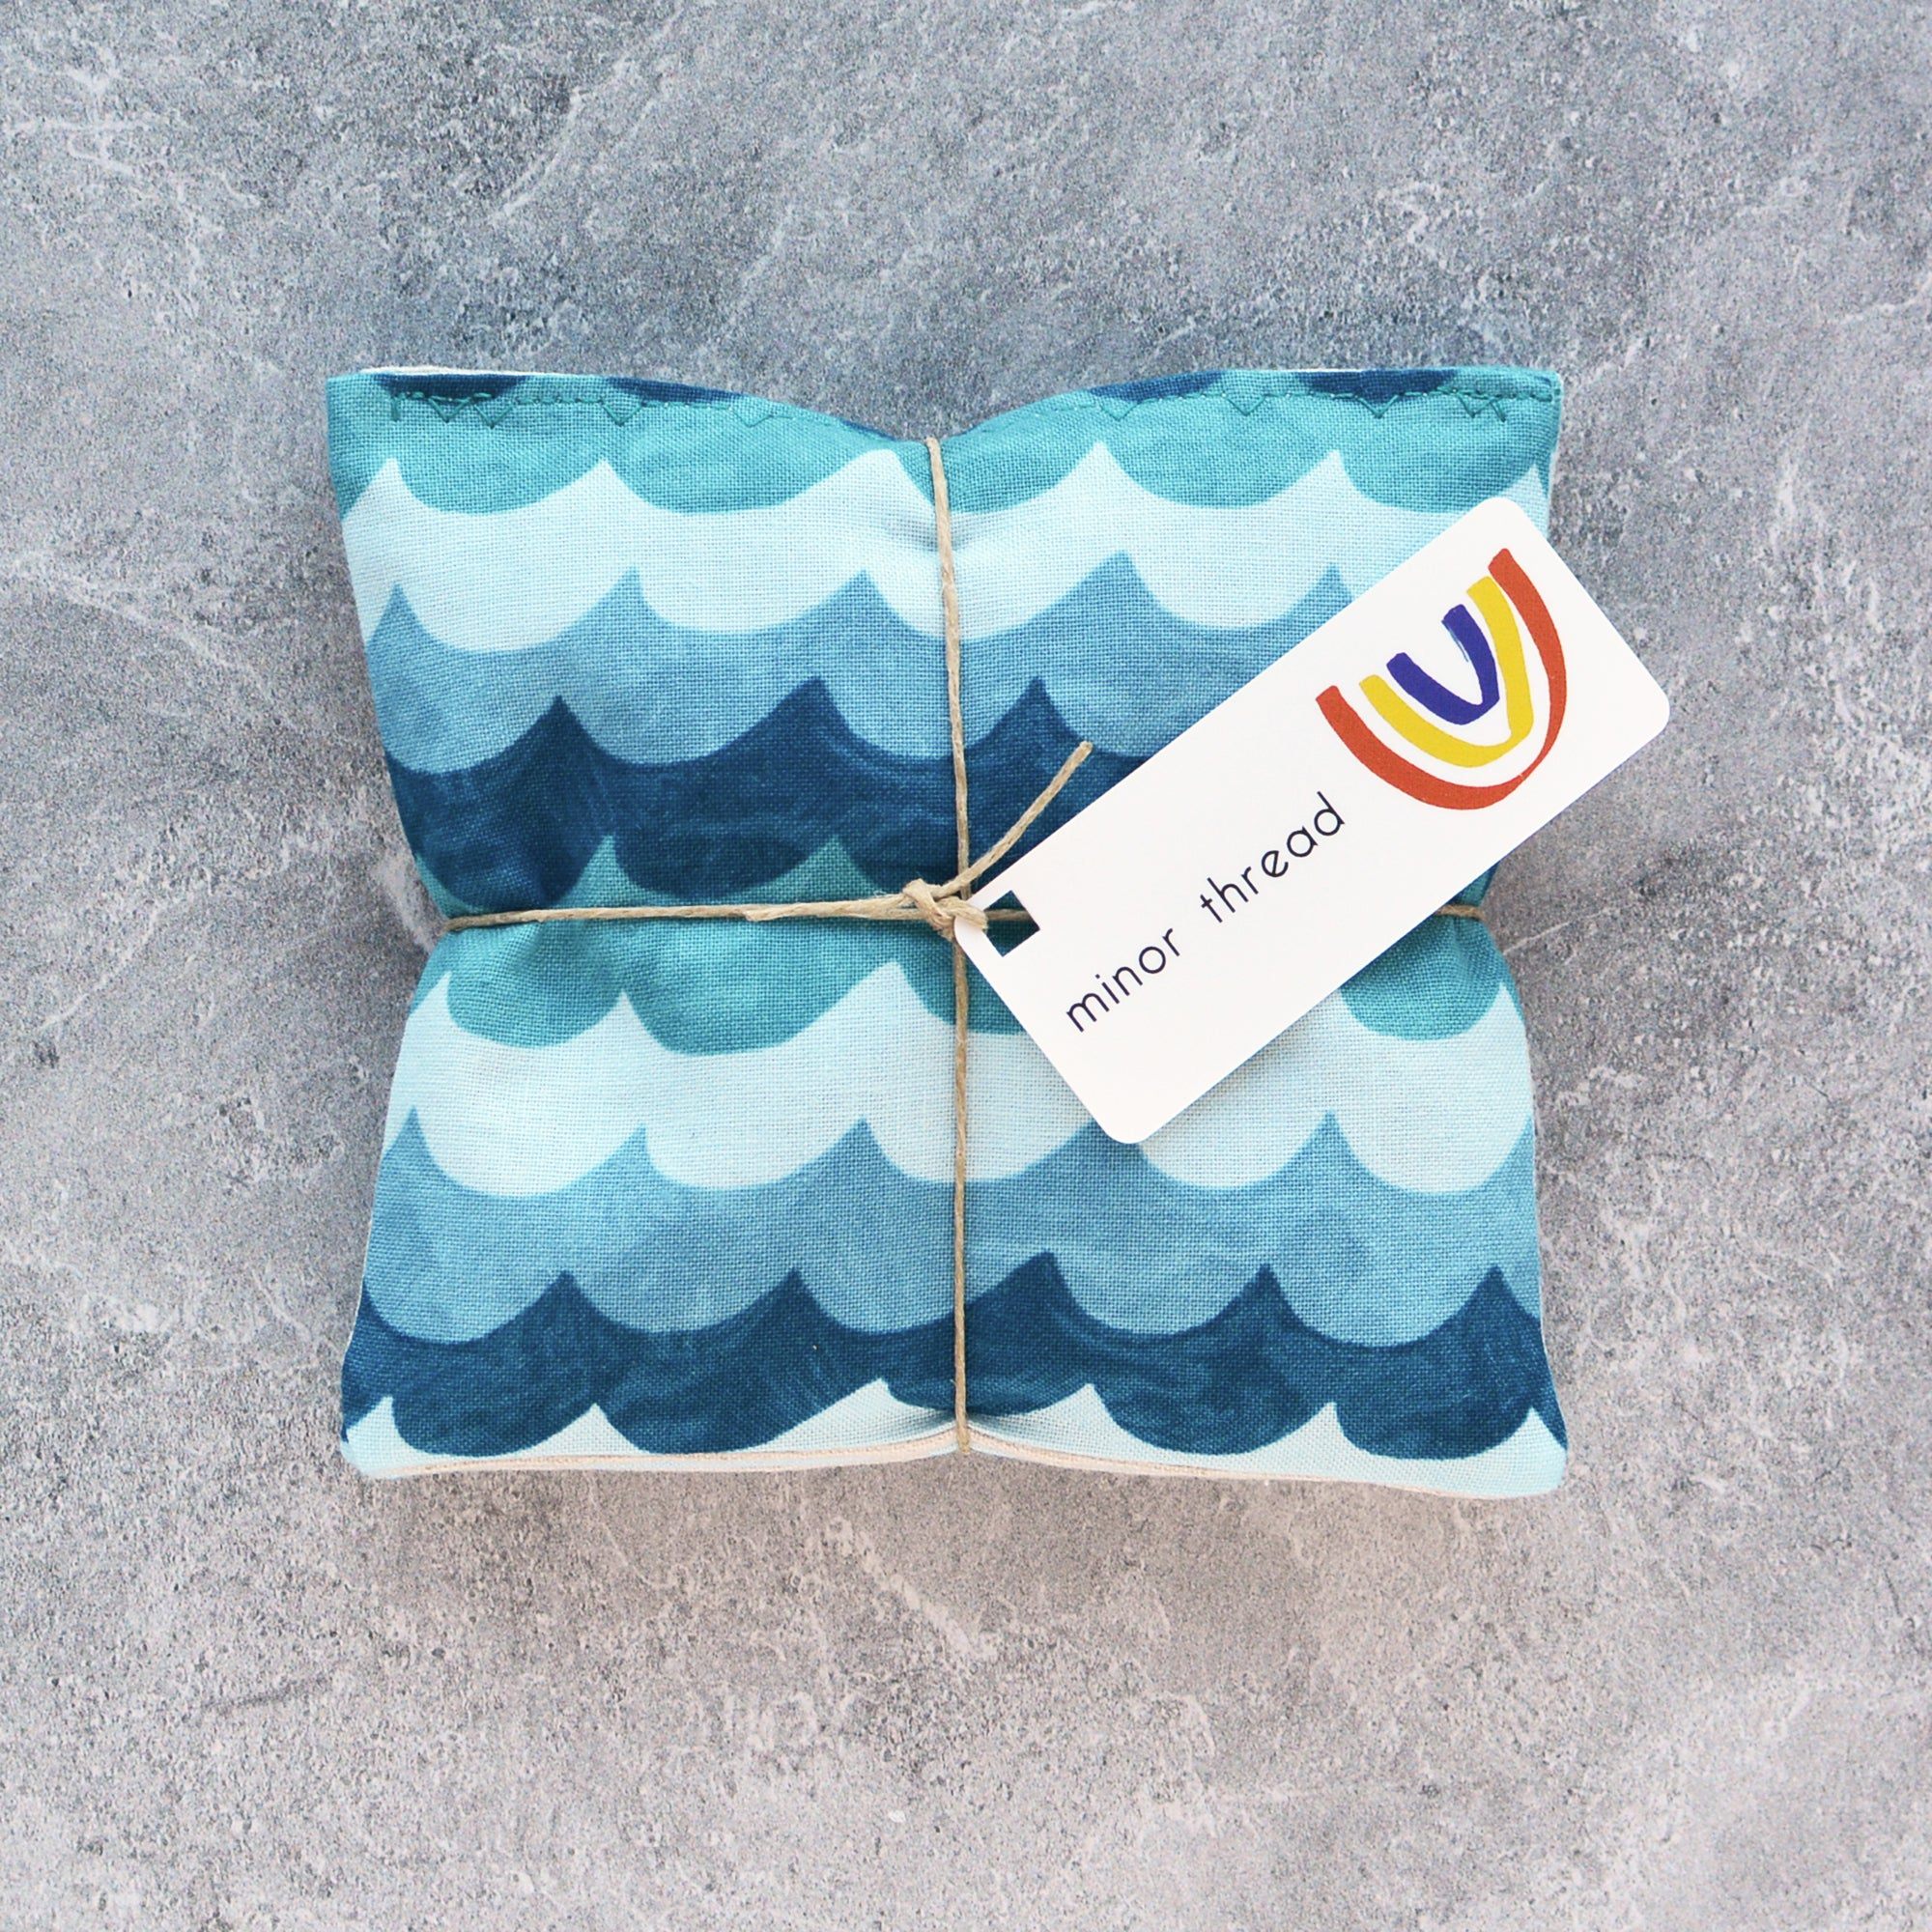 Organic Lavender Sachets in Amalfi Waves Turquoise - Set of 2